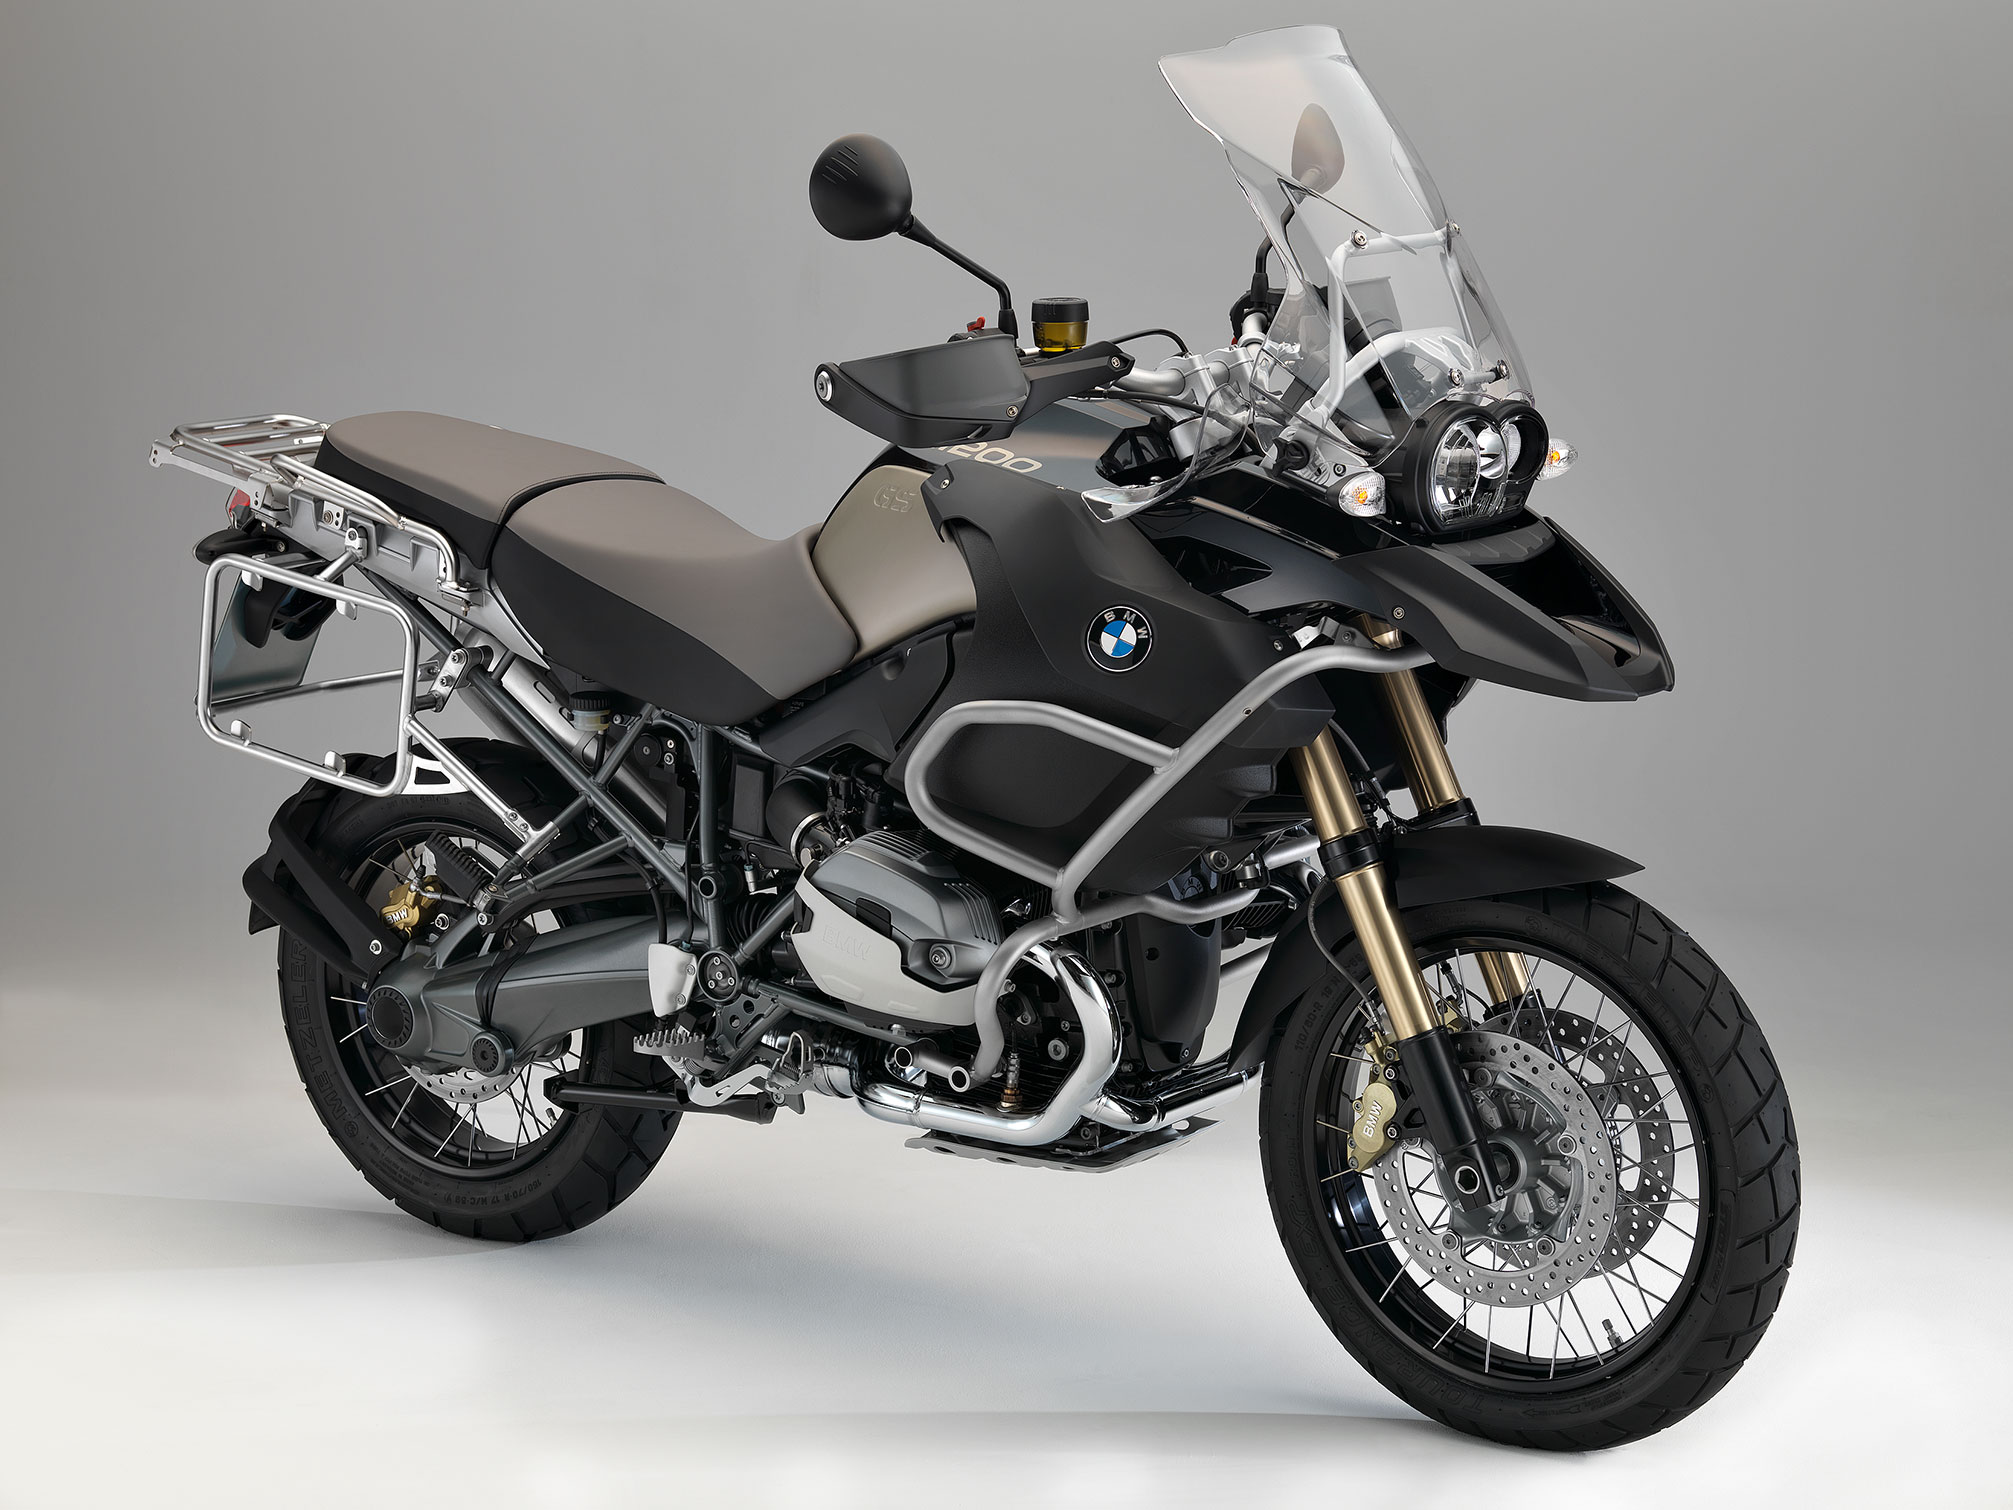 bmw r 1200 gs adventure 90 years special model specs. Black Bedroom Furniture Sets. Home Design Ideas